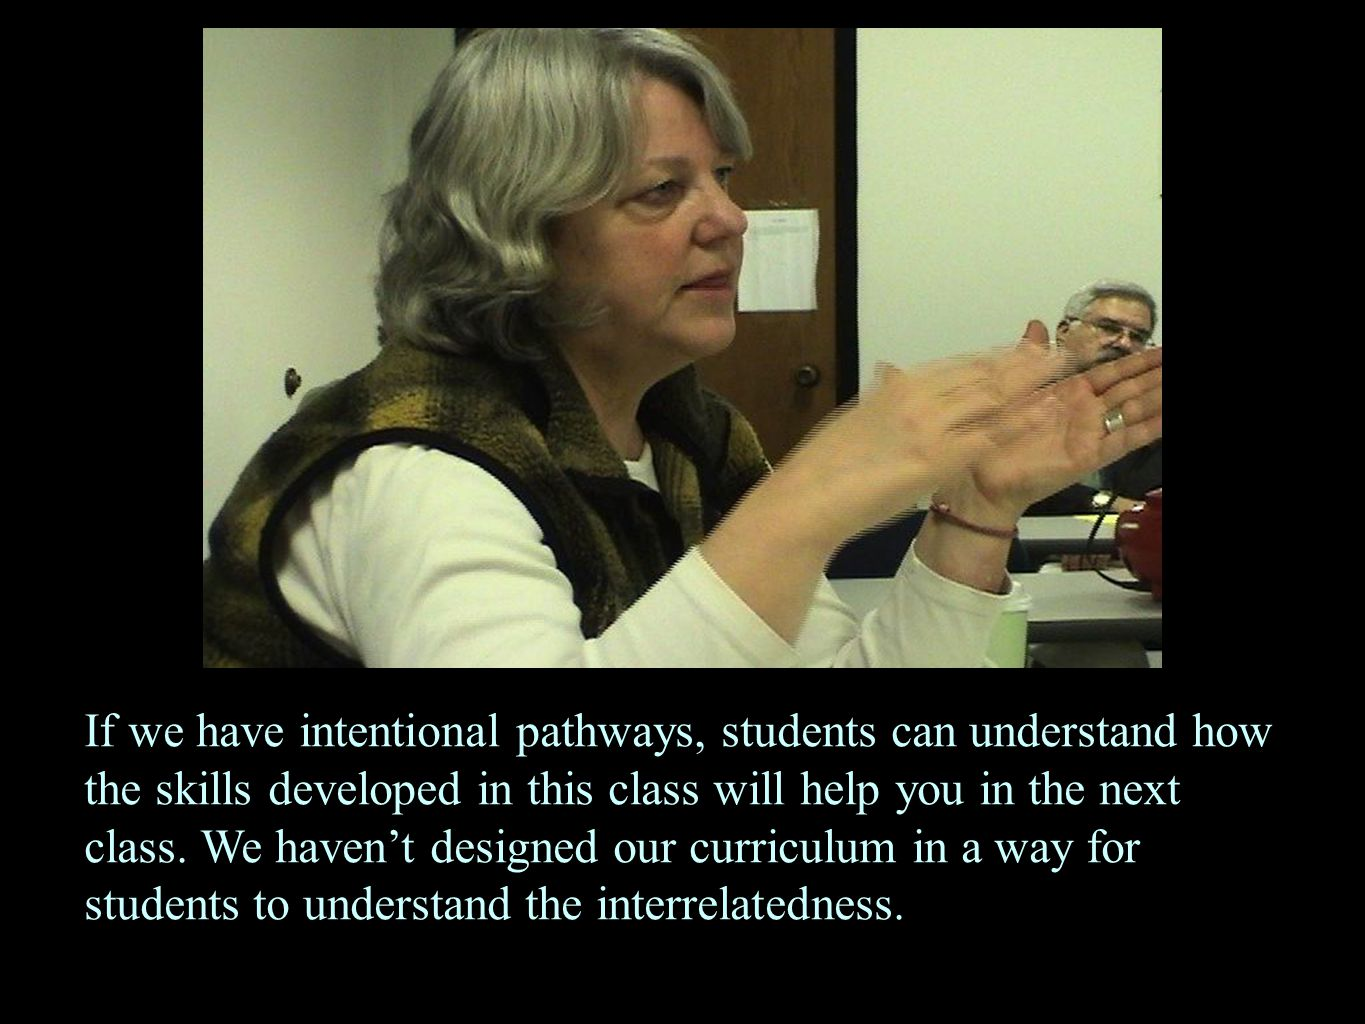 If we have intentional pathways, students can understand how the skills developed in this class will help you in the next class. We haven't designed o